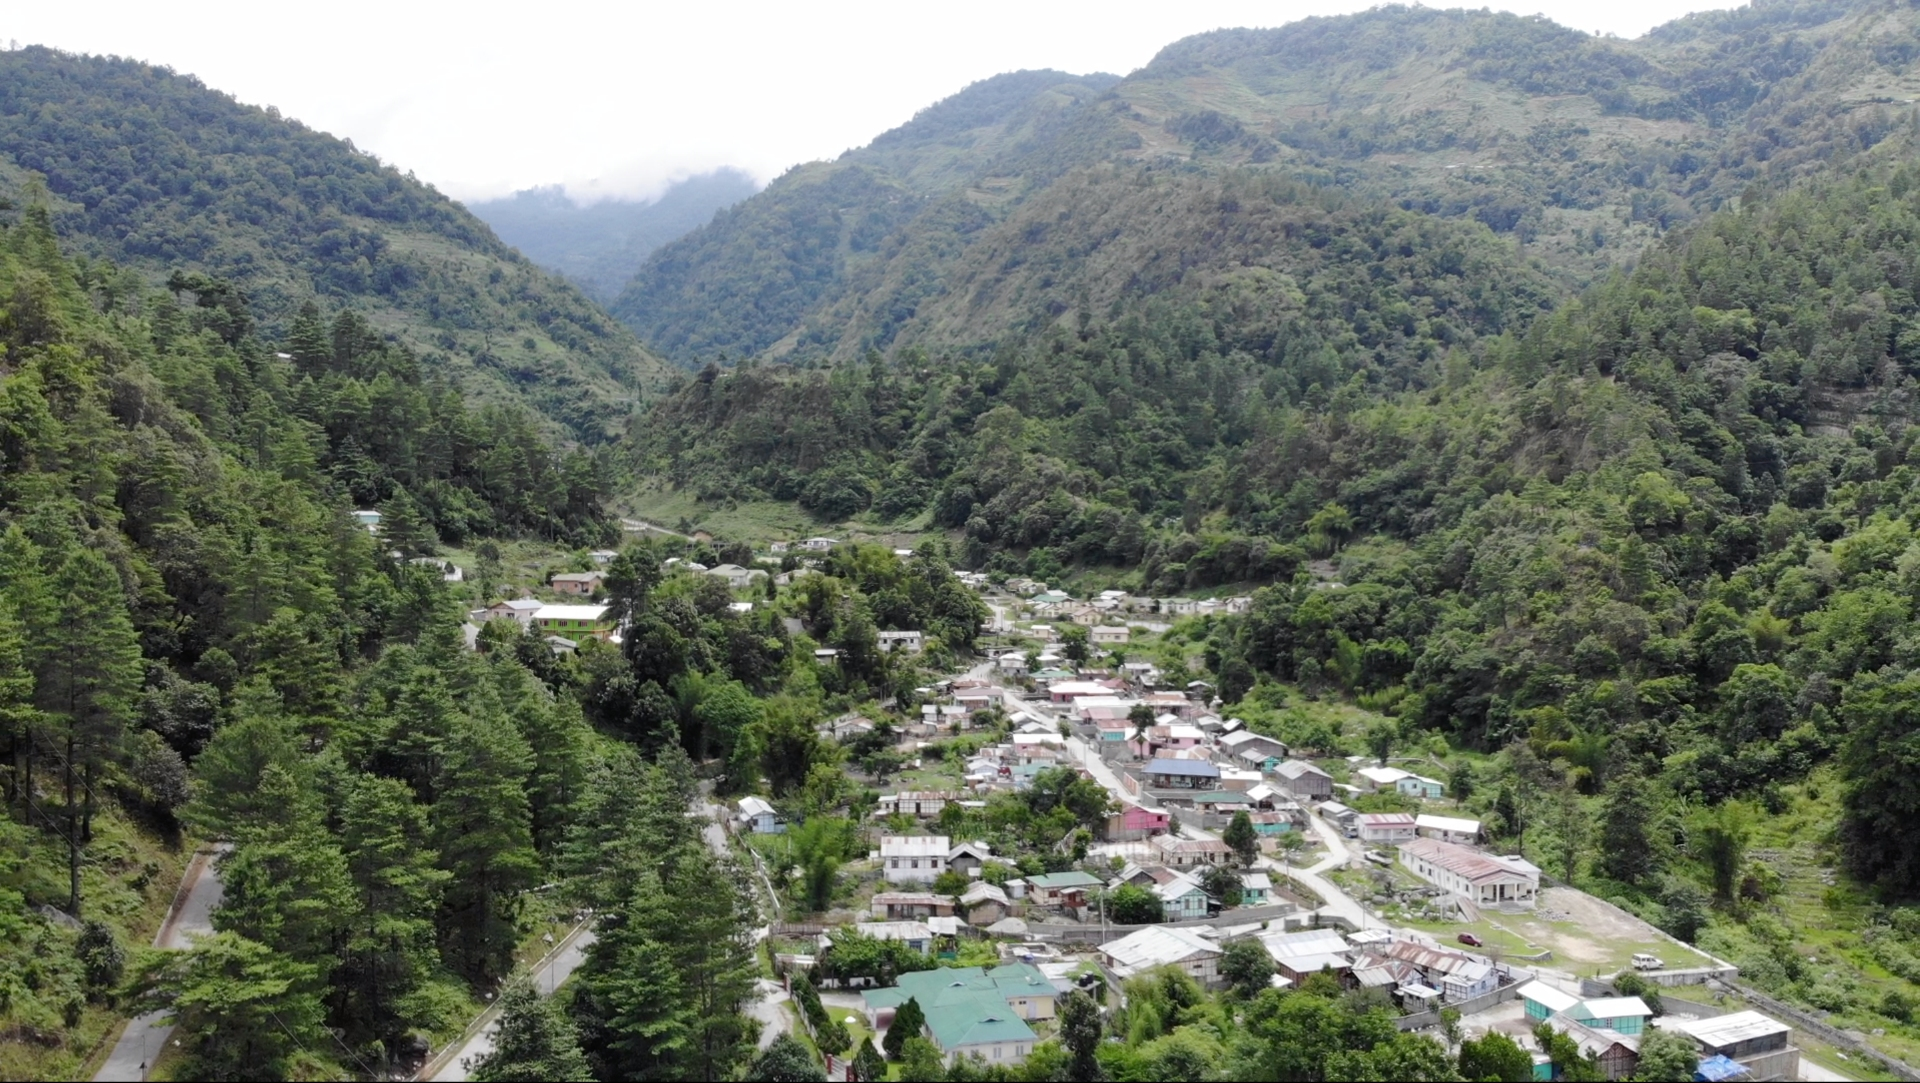 Singchung village is located in the West Kameng district of Arunachal Pradesh. The region is a biodiversity a hotspot, with numerous species that are yet to be classified. Photo: Shaleena Phinya </br> The bugun liocichla was officially discovered in 2006, and was the first avian species to be classified after India became a republic. It is classified as critically endangered by the IUCN, with 14 known individuals. It is one of five bird species in the genus Liocichla. Photo: Rohan Pandit